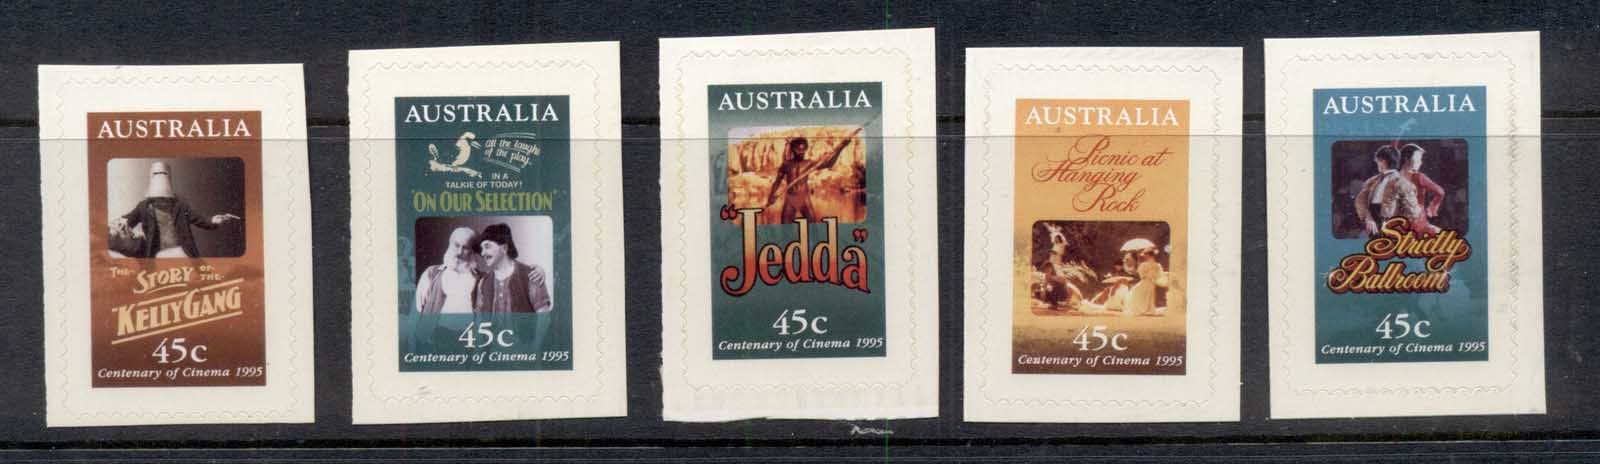 Australia 1995 Centenary of the Cinema P&S ex booklet MUH